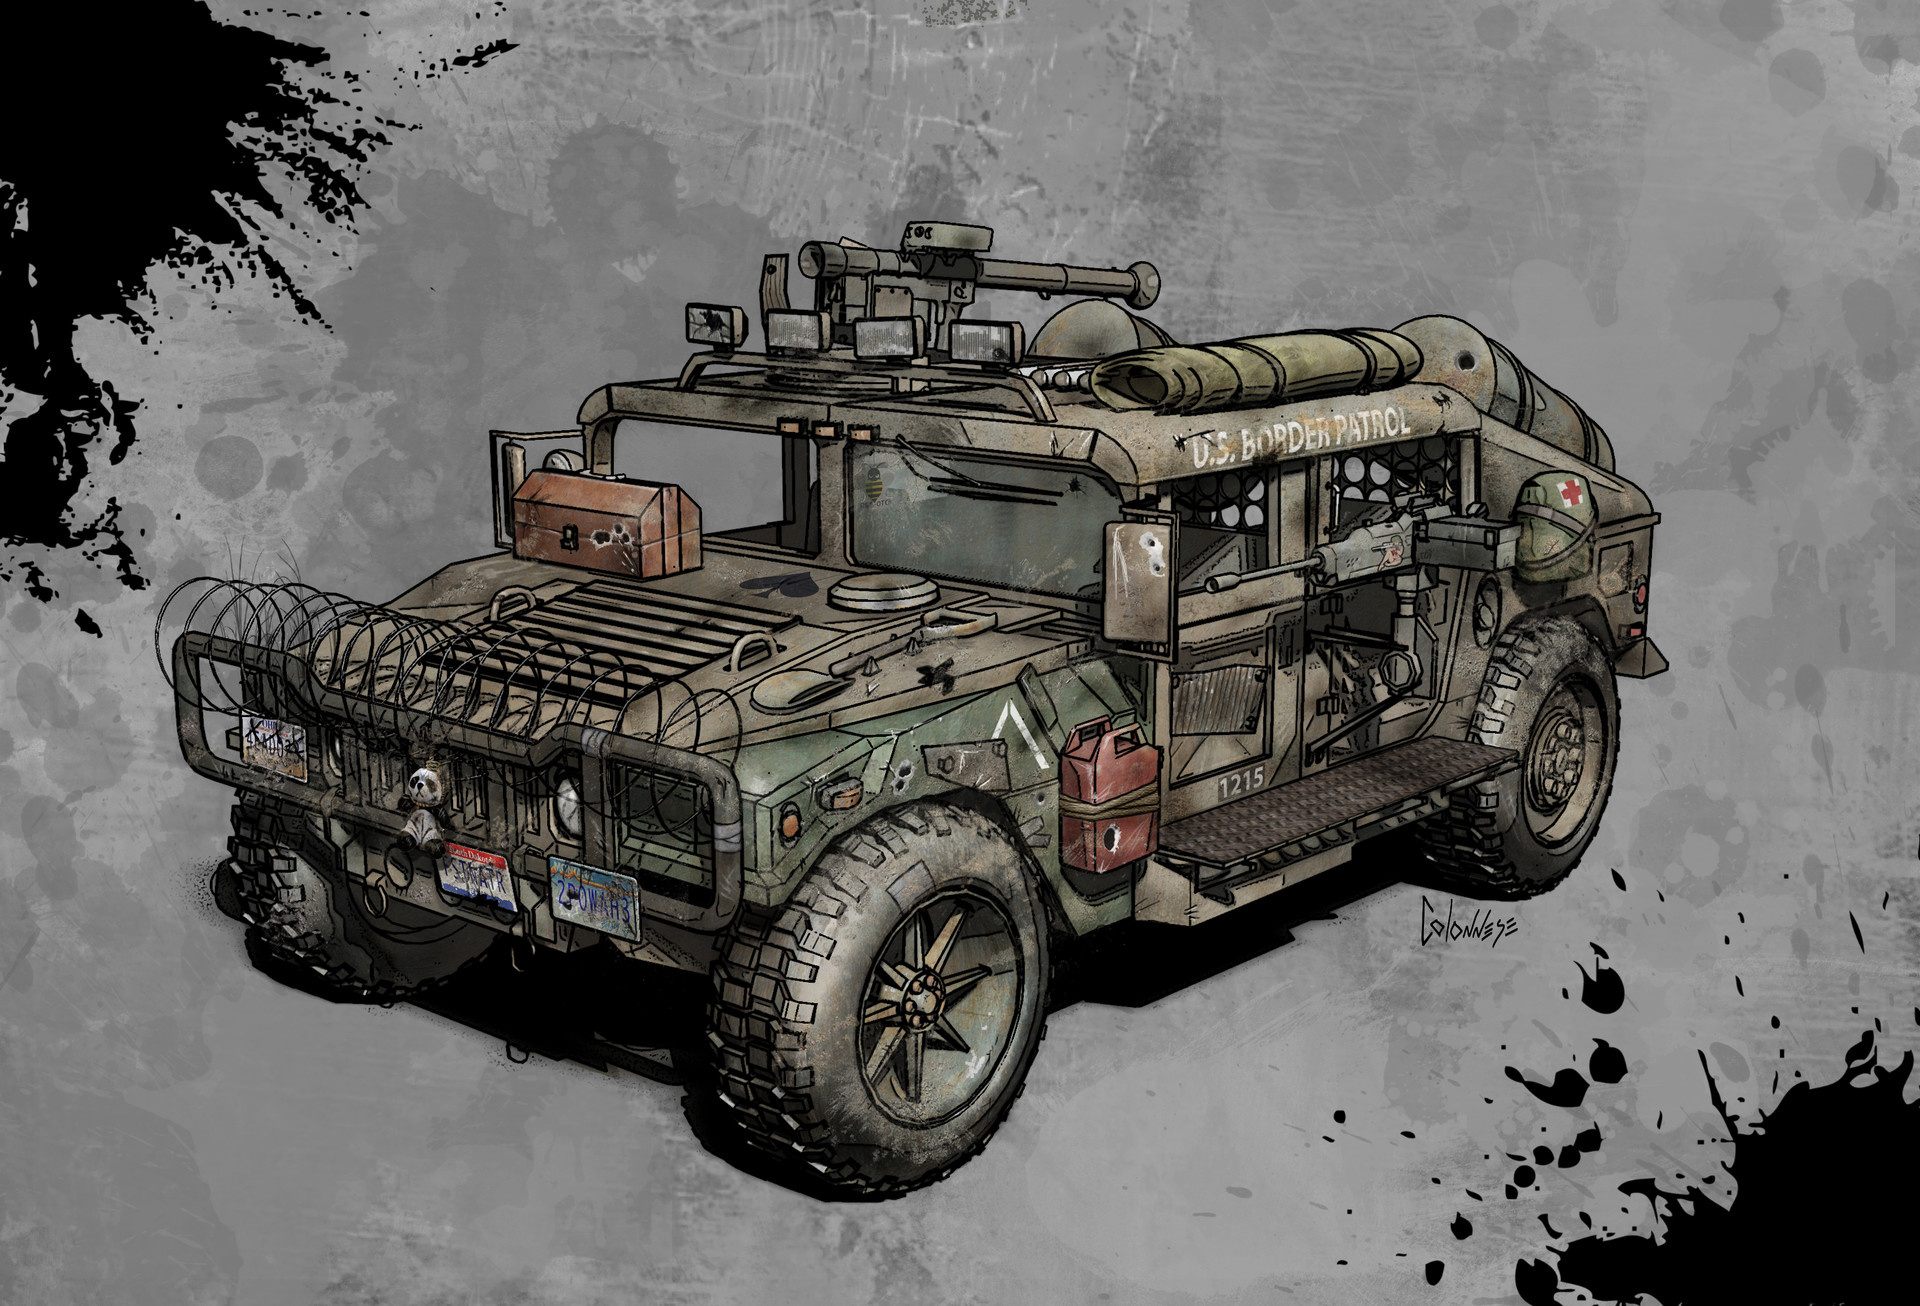 Mike colonnese humvee2